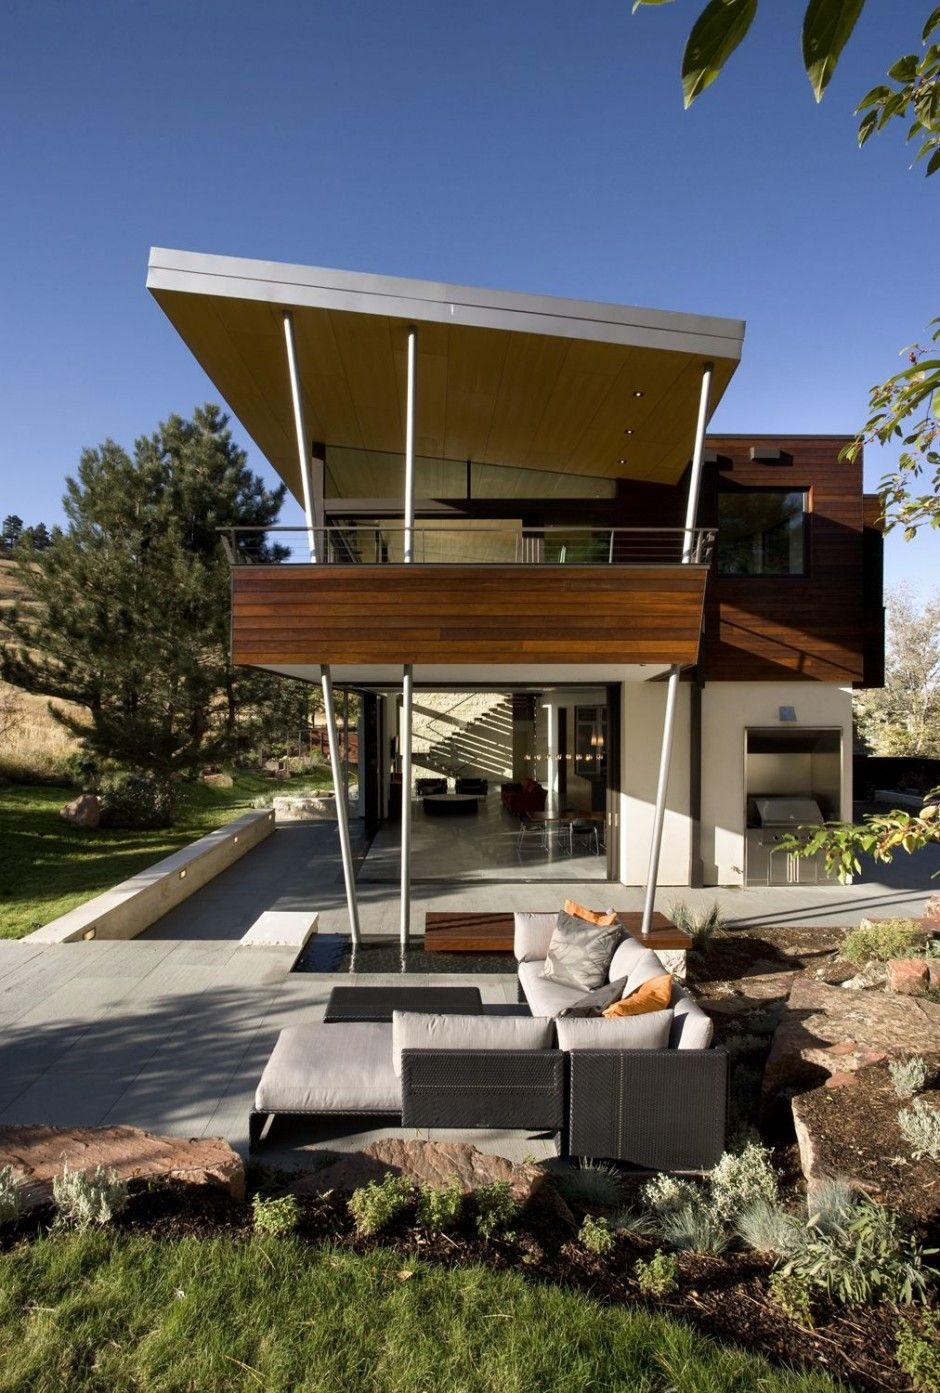 Amazing Syncline House, Arch11. Boulder Colorado Architecture Firm